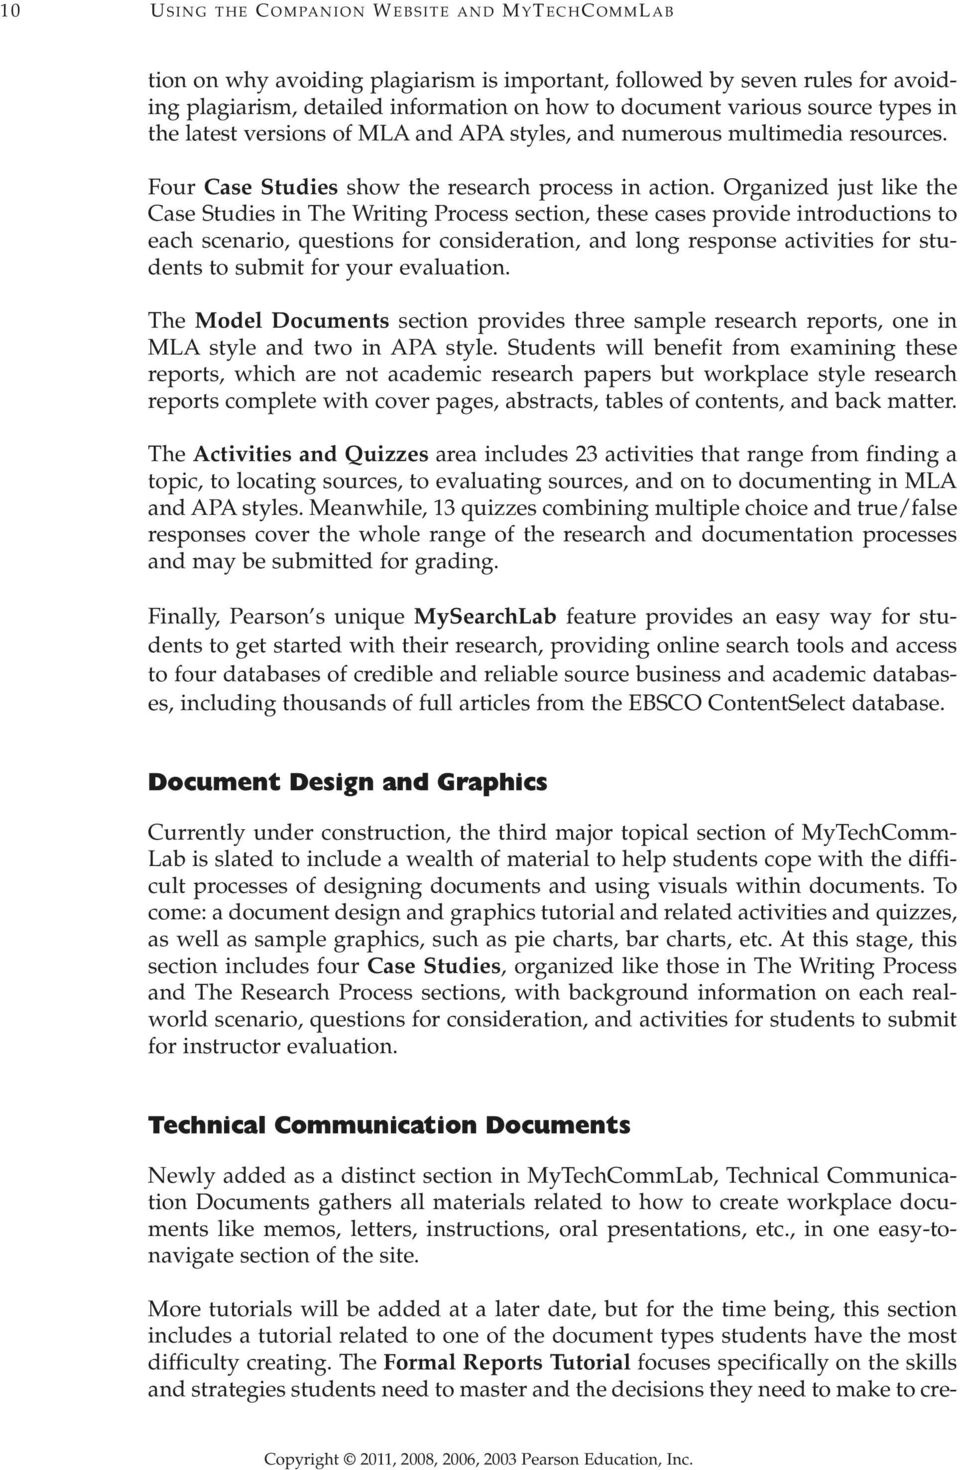 013 Research Paper Page 18 Interesting Topics Fearsome Biology Marine Full